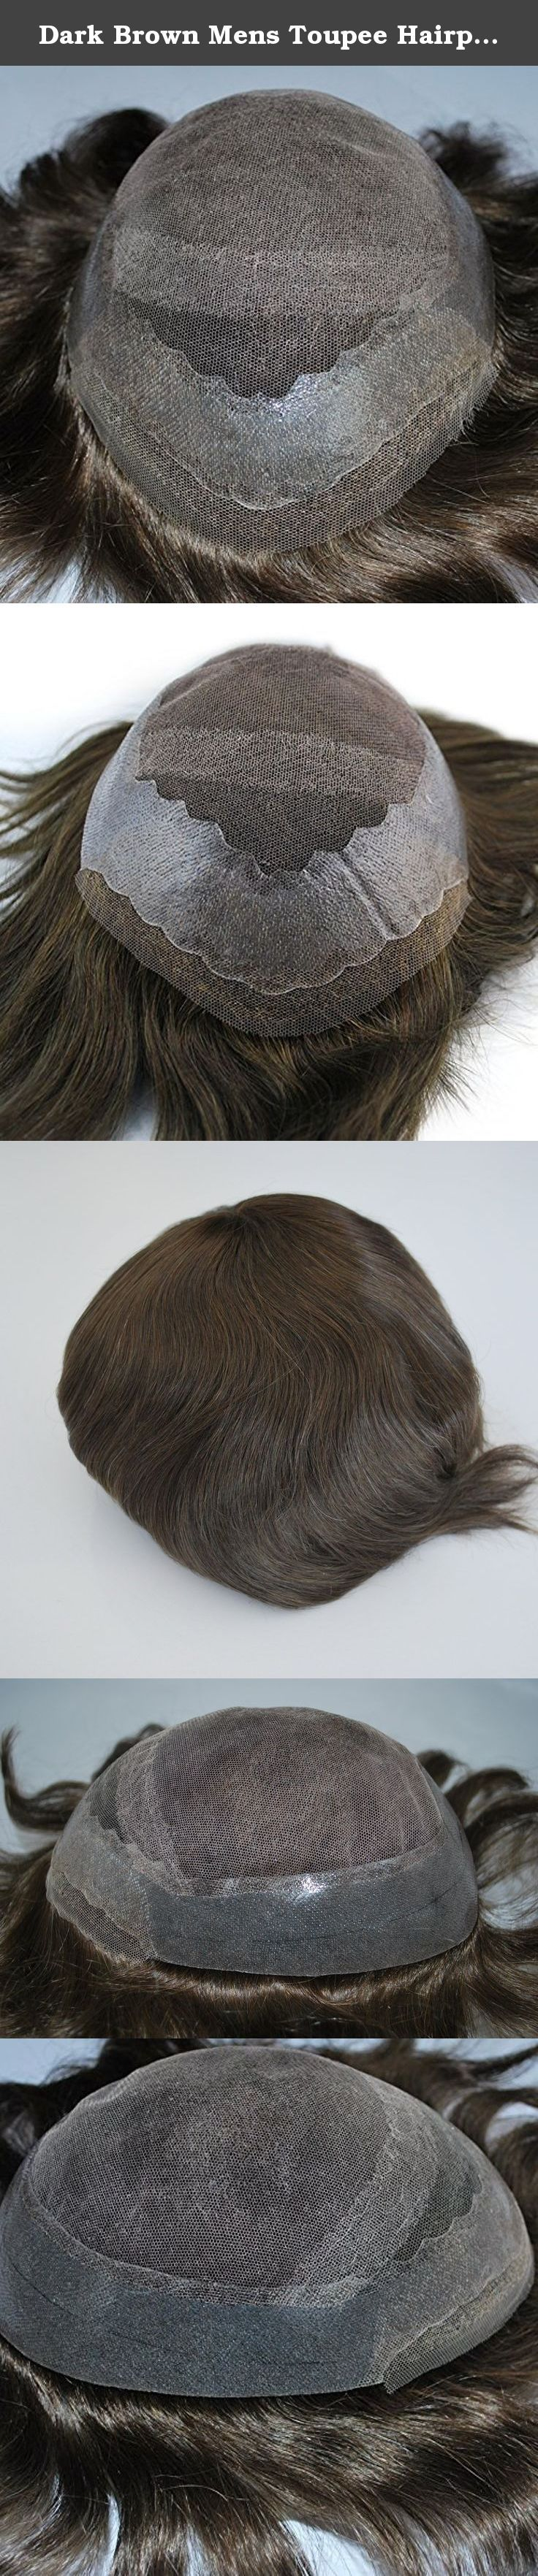 Dark Brown Mens Toupee Hairpiece Hair System 100% Human Hair #3 Color. Ready Made Toupee for Men Base Type: French Lace with PU all around, with lace in the front .Hair Style: Free style Hair Color: #3- medium brown Hair Length:6 inch Hair Density: Medium 130% Base Size:10x7.5 inch, can be cut to 9x7inch Hair Type: 100% remy human hair.